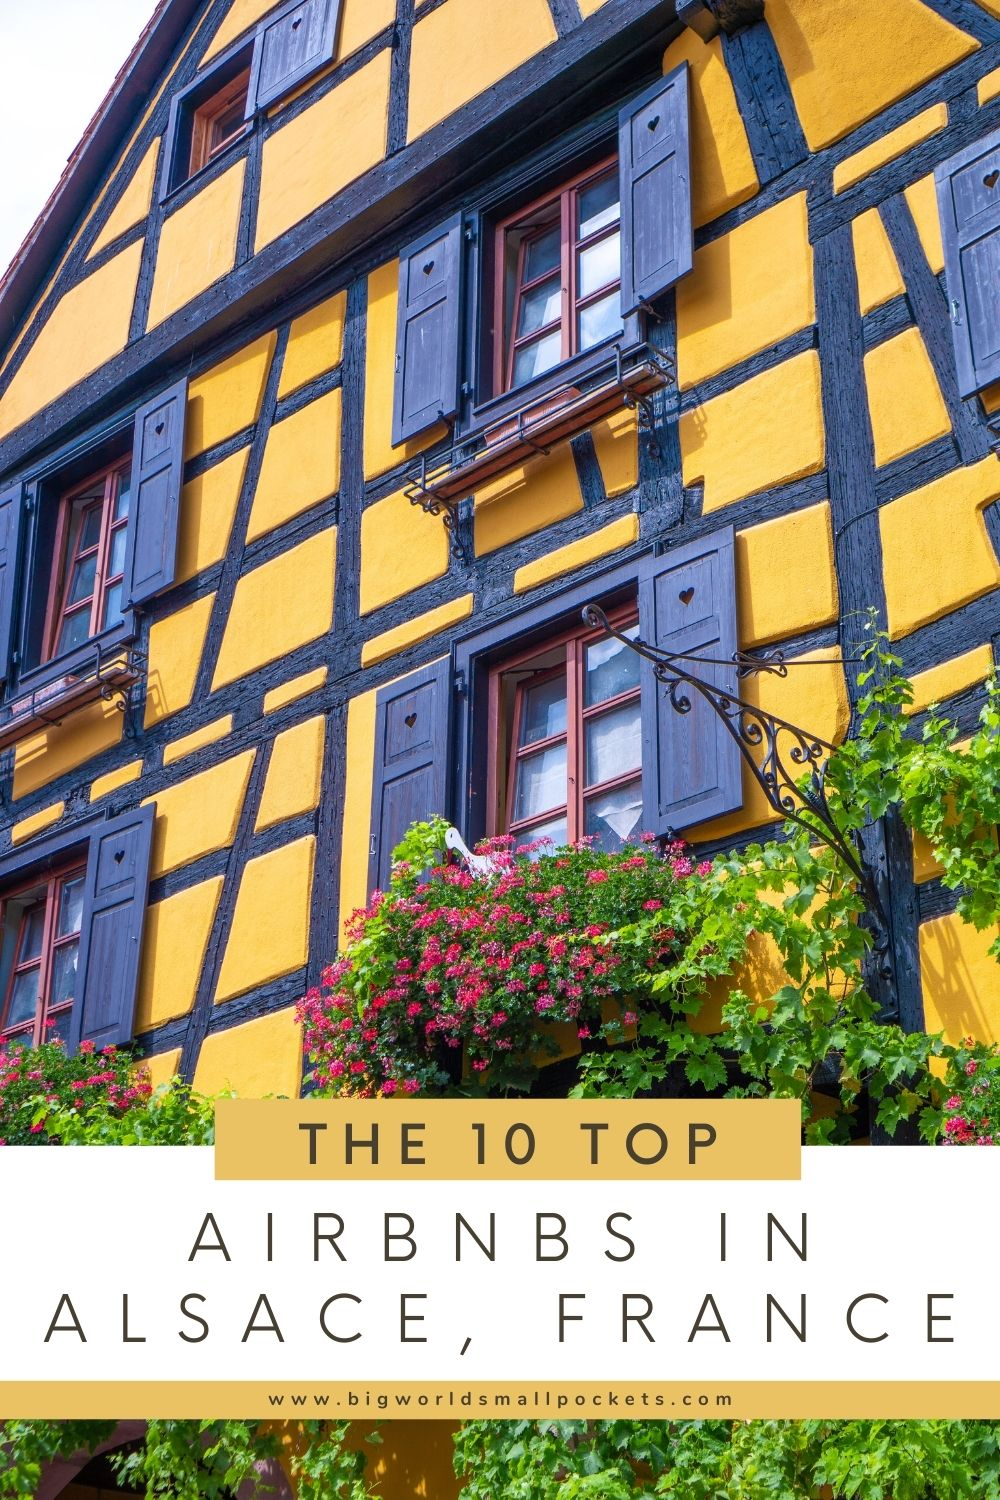 The 10 Best Airbnbs in Alsace, France